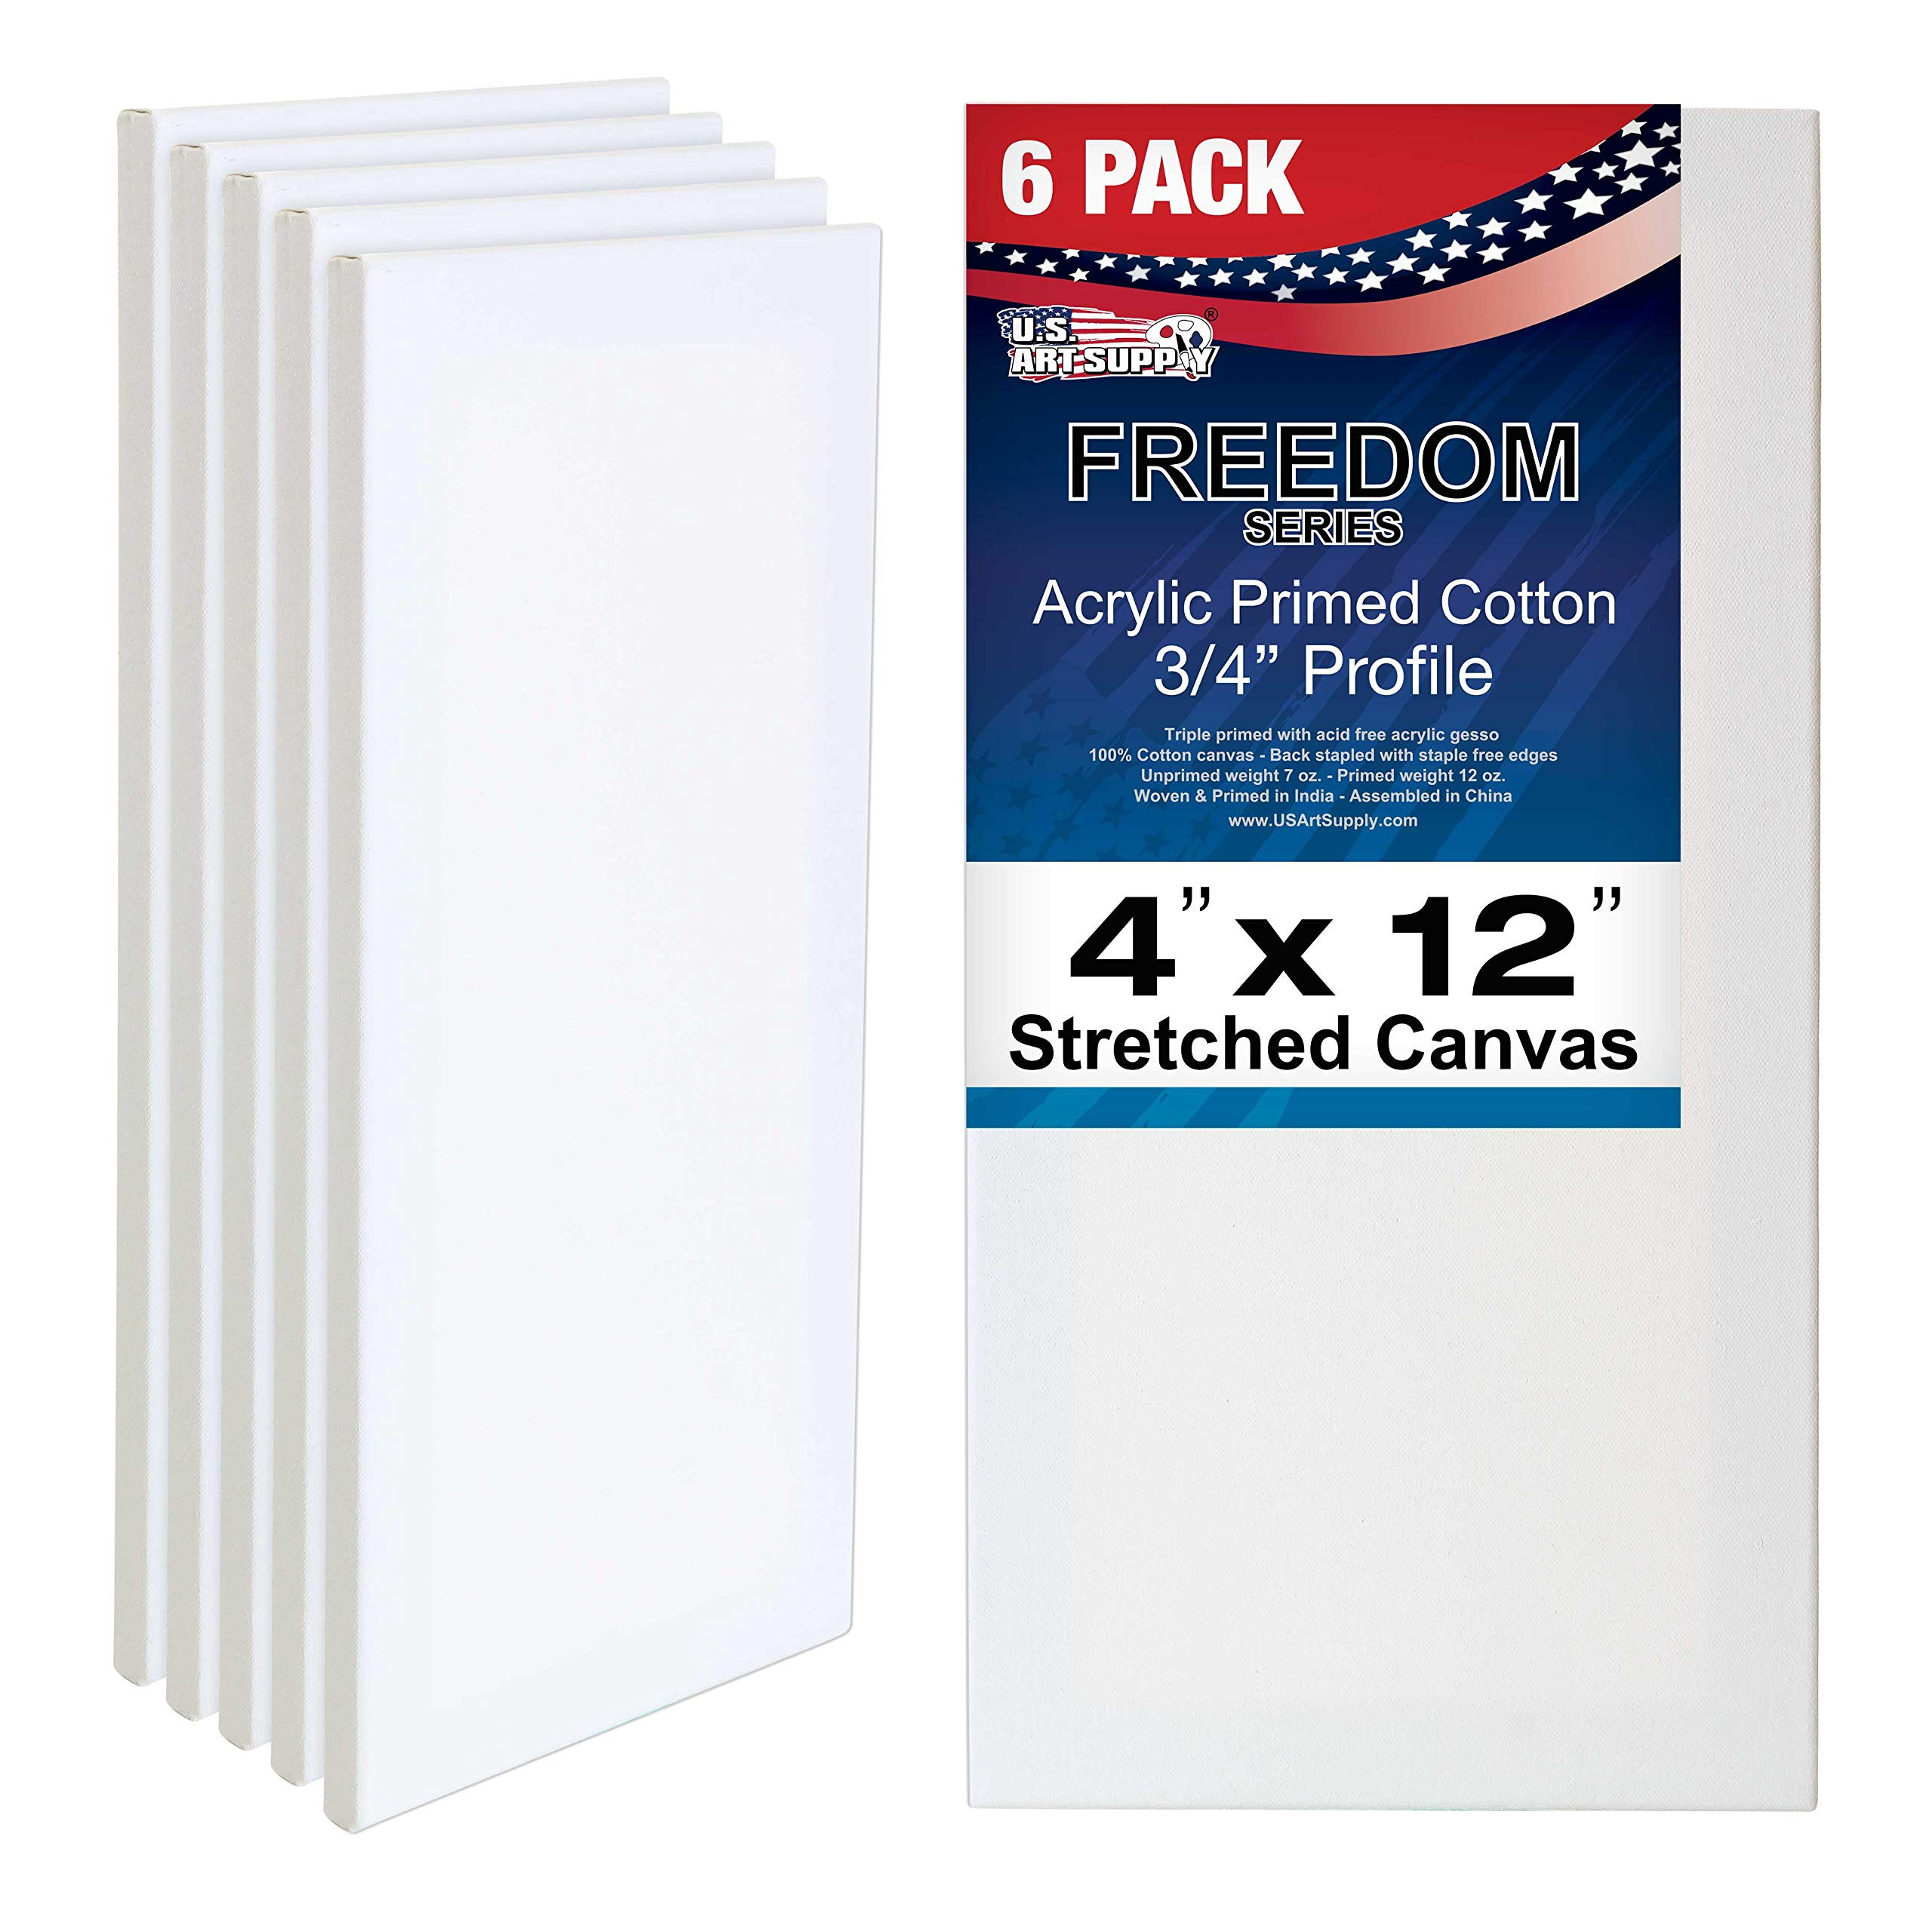 US Art Supply 4 x 12 inch Professional Quality Acid Free Stretched Canvas 6-Pack - 3/4 Profile 12 Ounce Primed Gesso - (1 Full Case of 6 Single Canvases) by US Art Supply